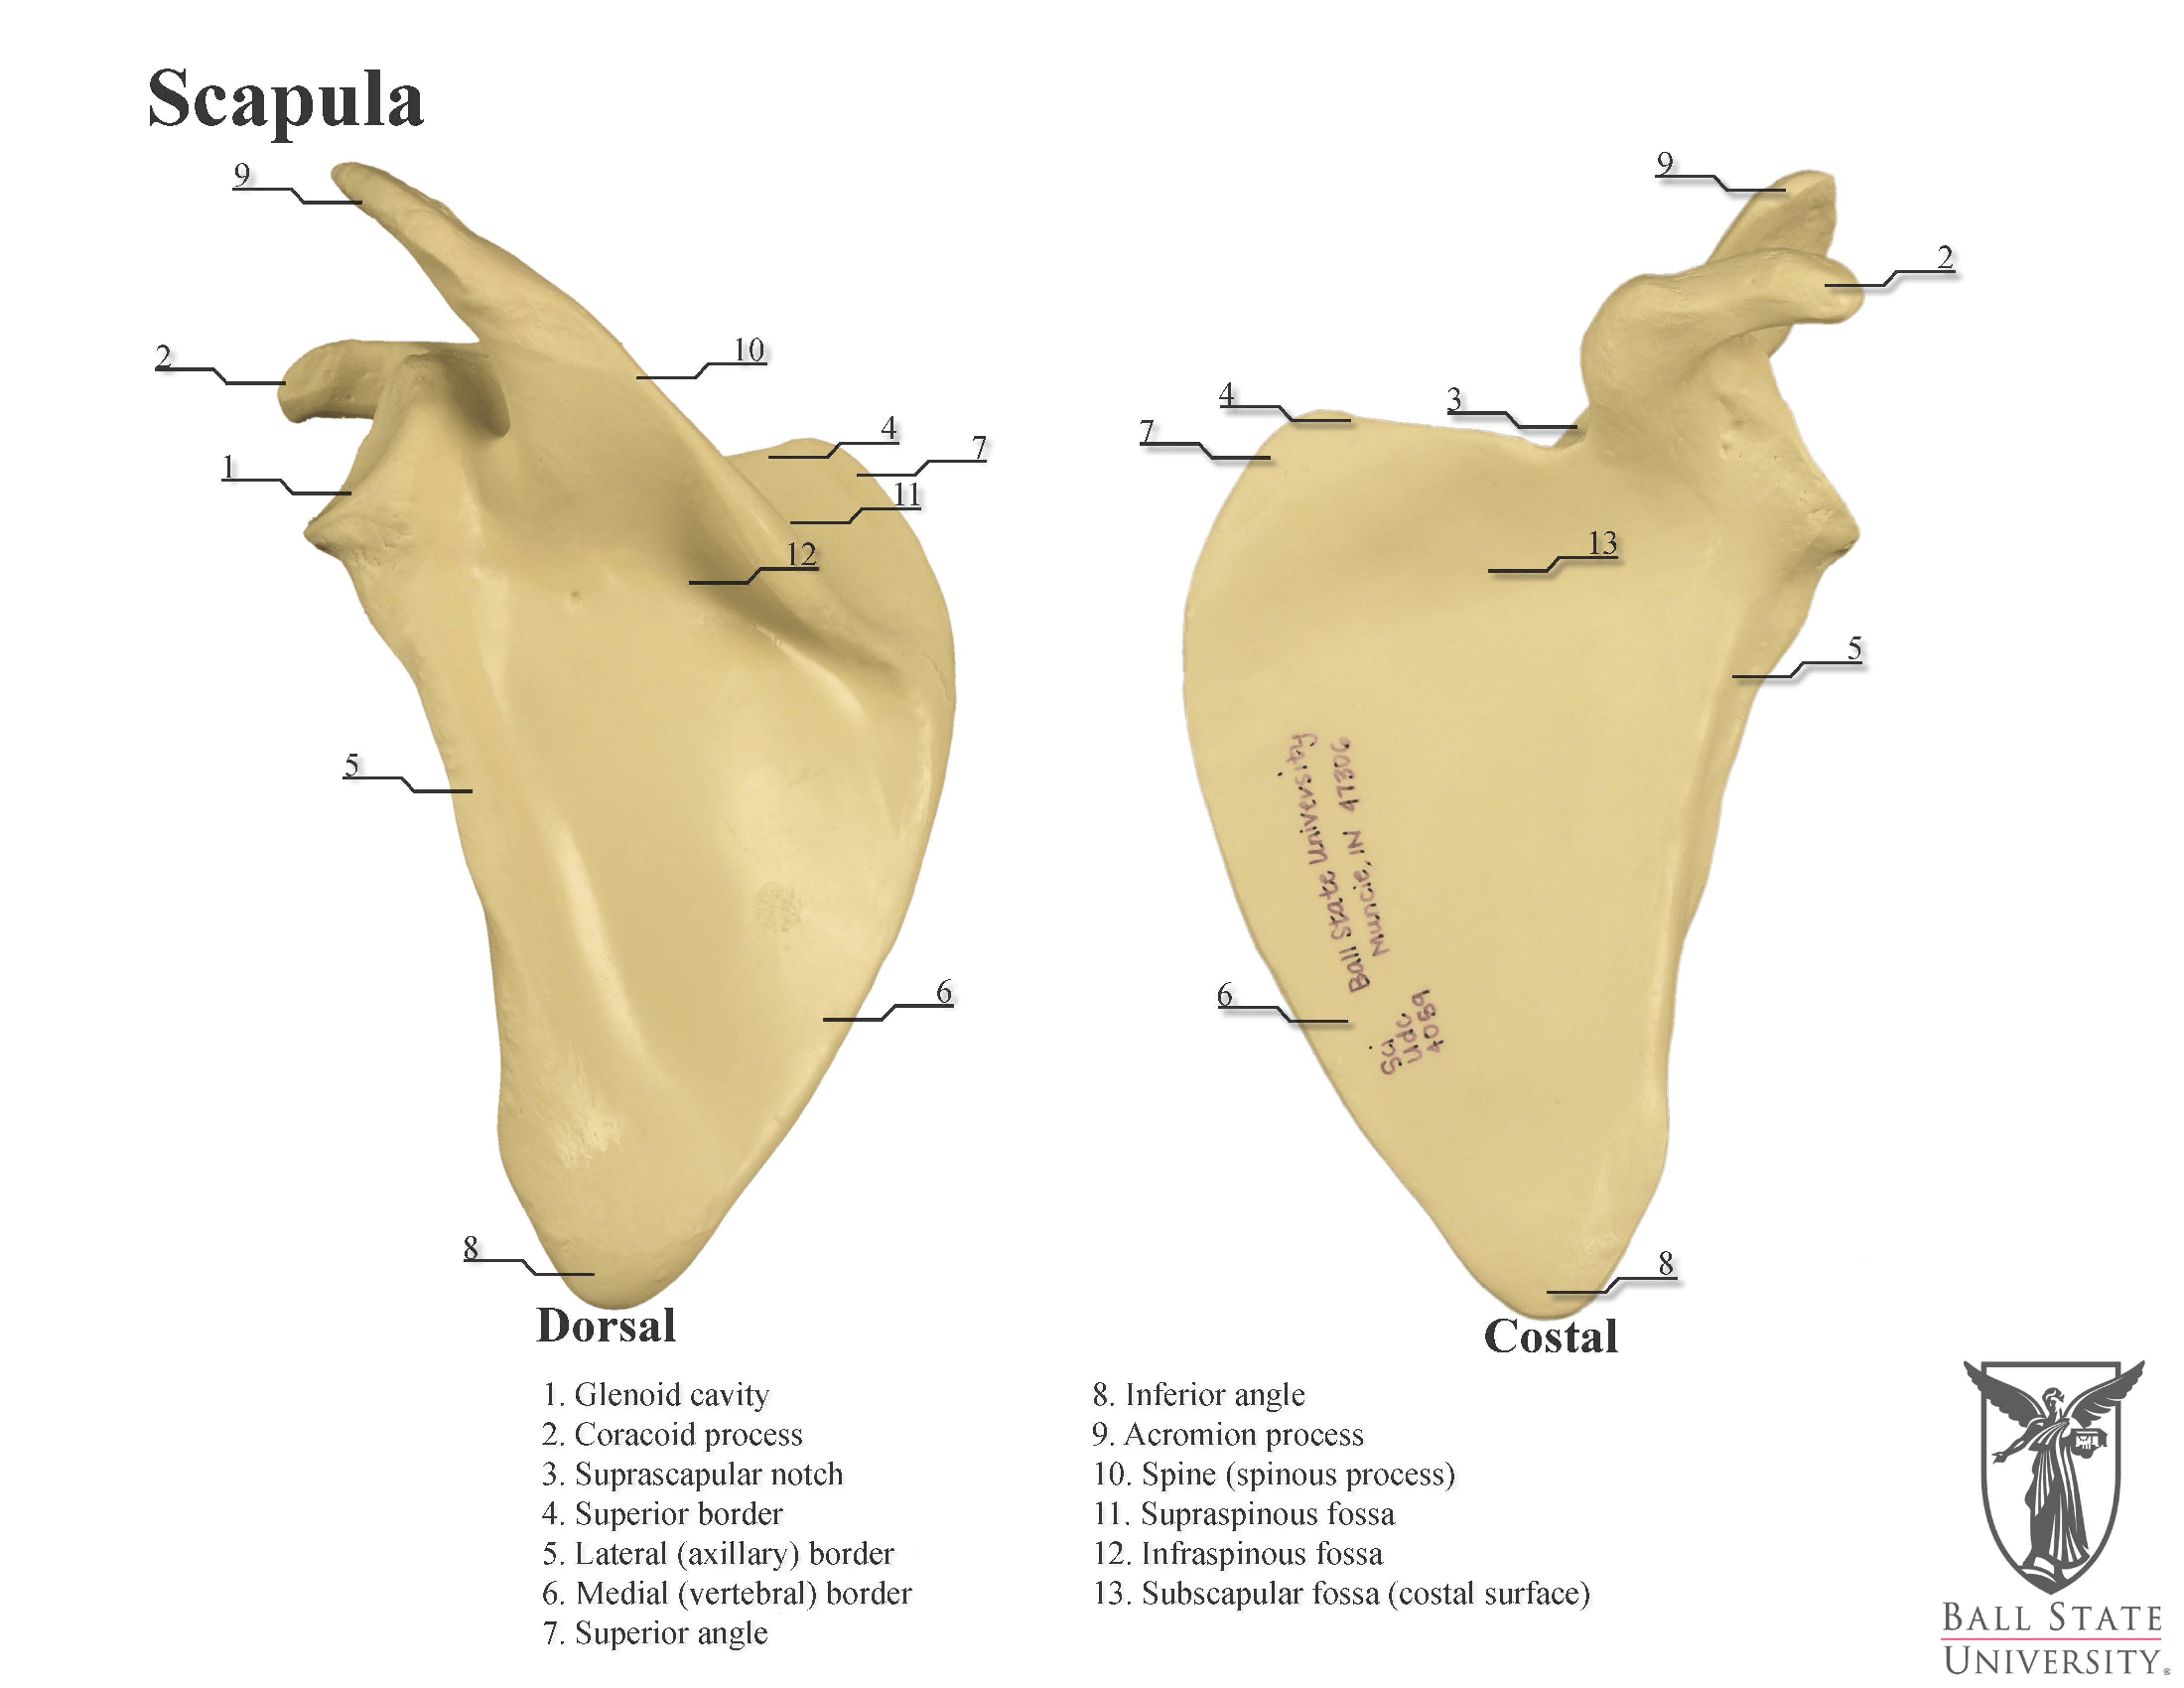 34 Blank Scapula To Label